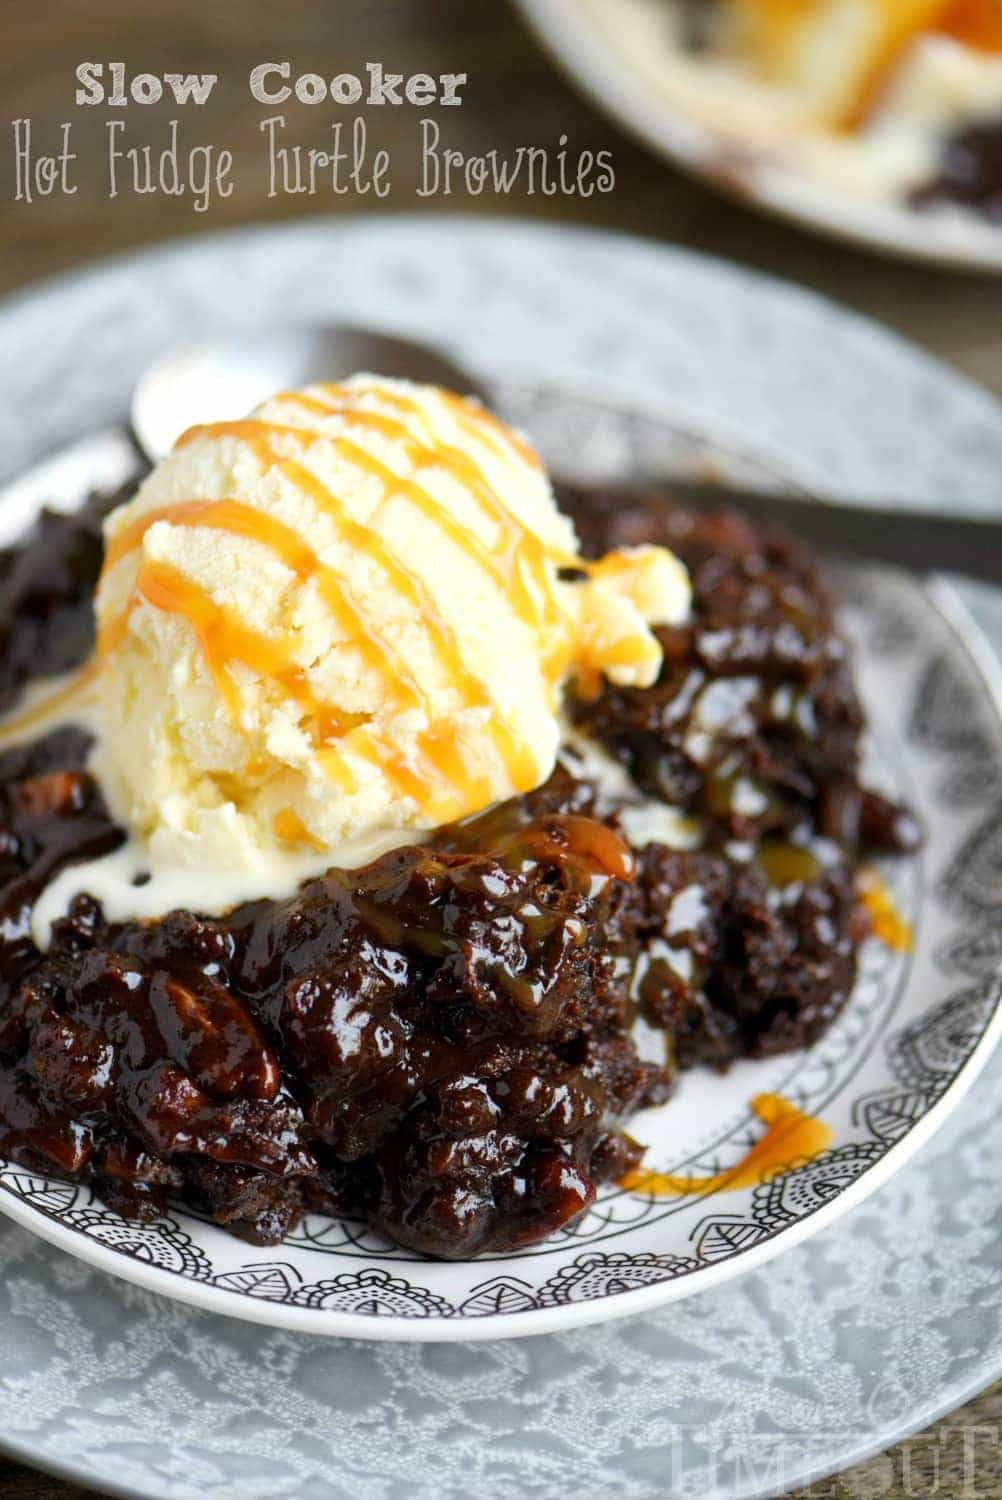 Slow Cooker Hot Fudge Turtle Brownies - Mom On Timeout